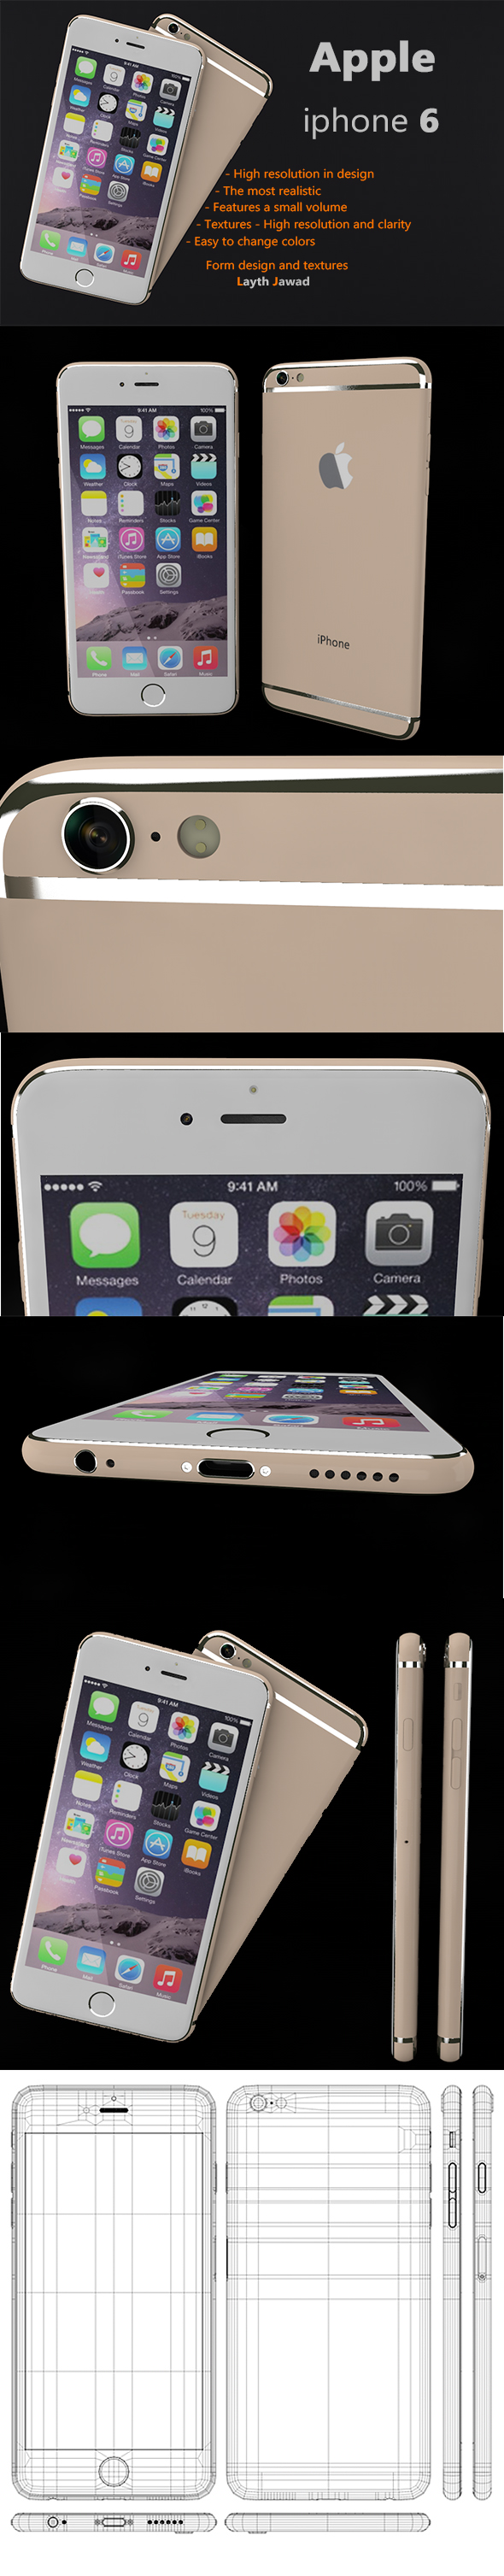 Apple iphone 6 - 3DOcean Item for Sale